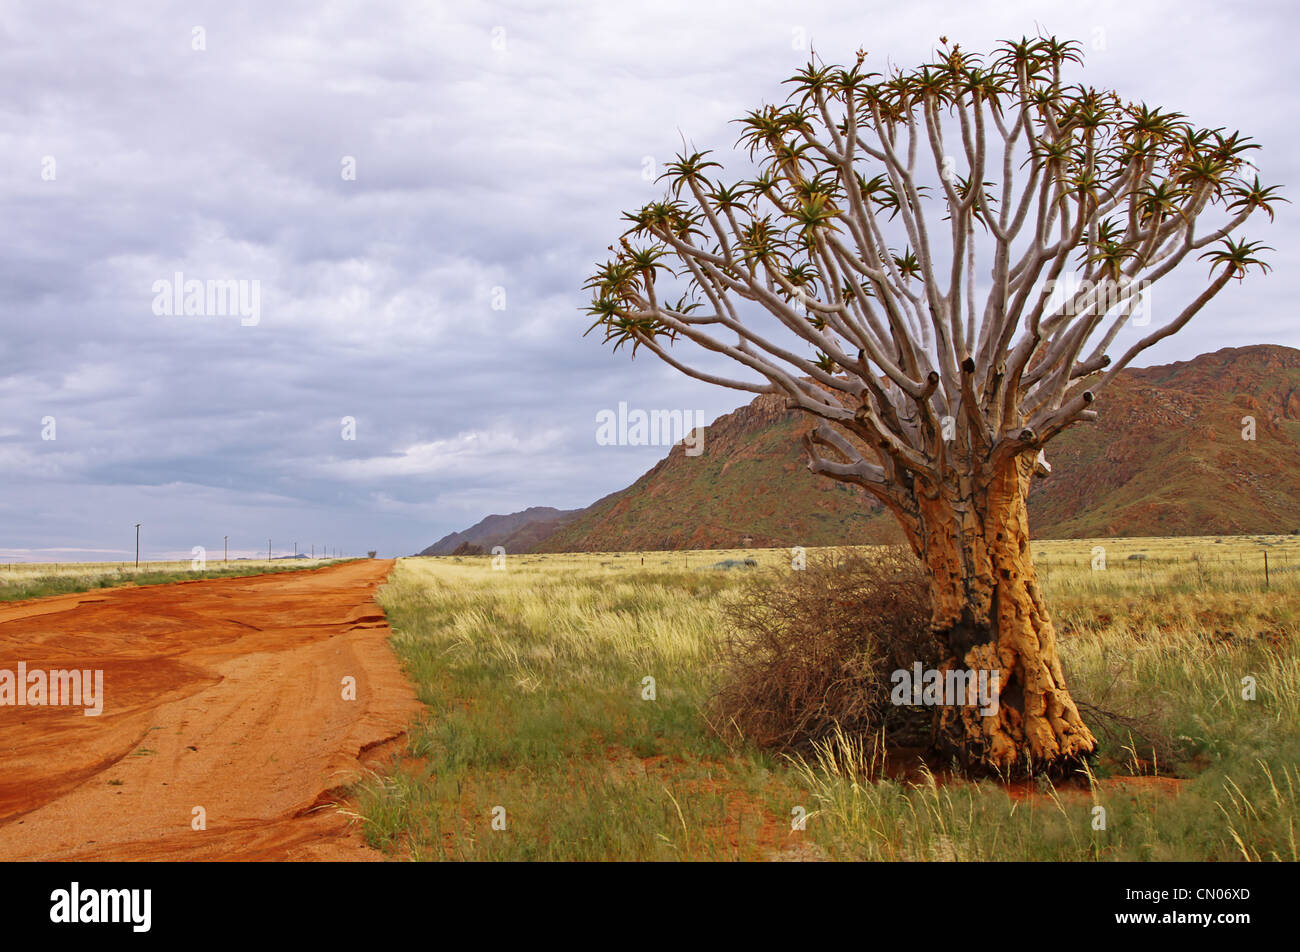 Quiver tree at the famous D707 in Namibia, Aloe dichotoma - Stock Image